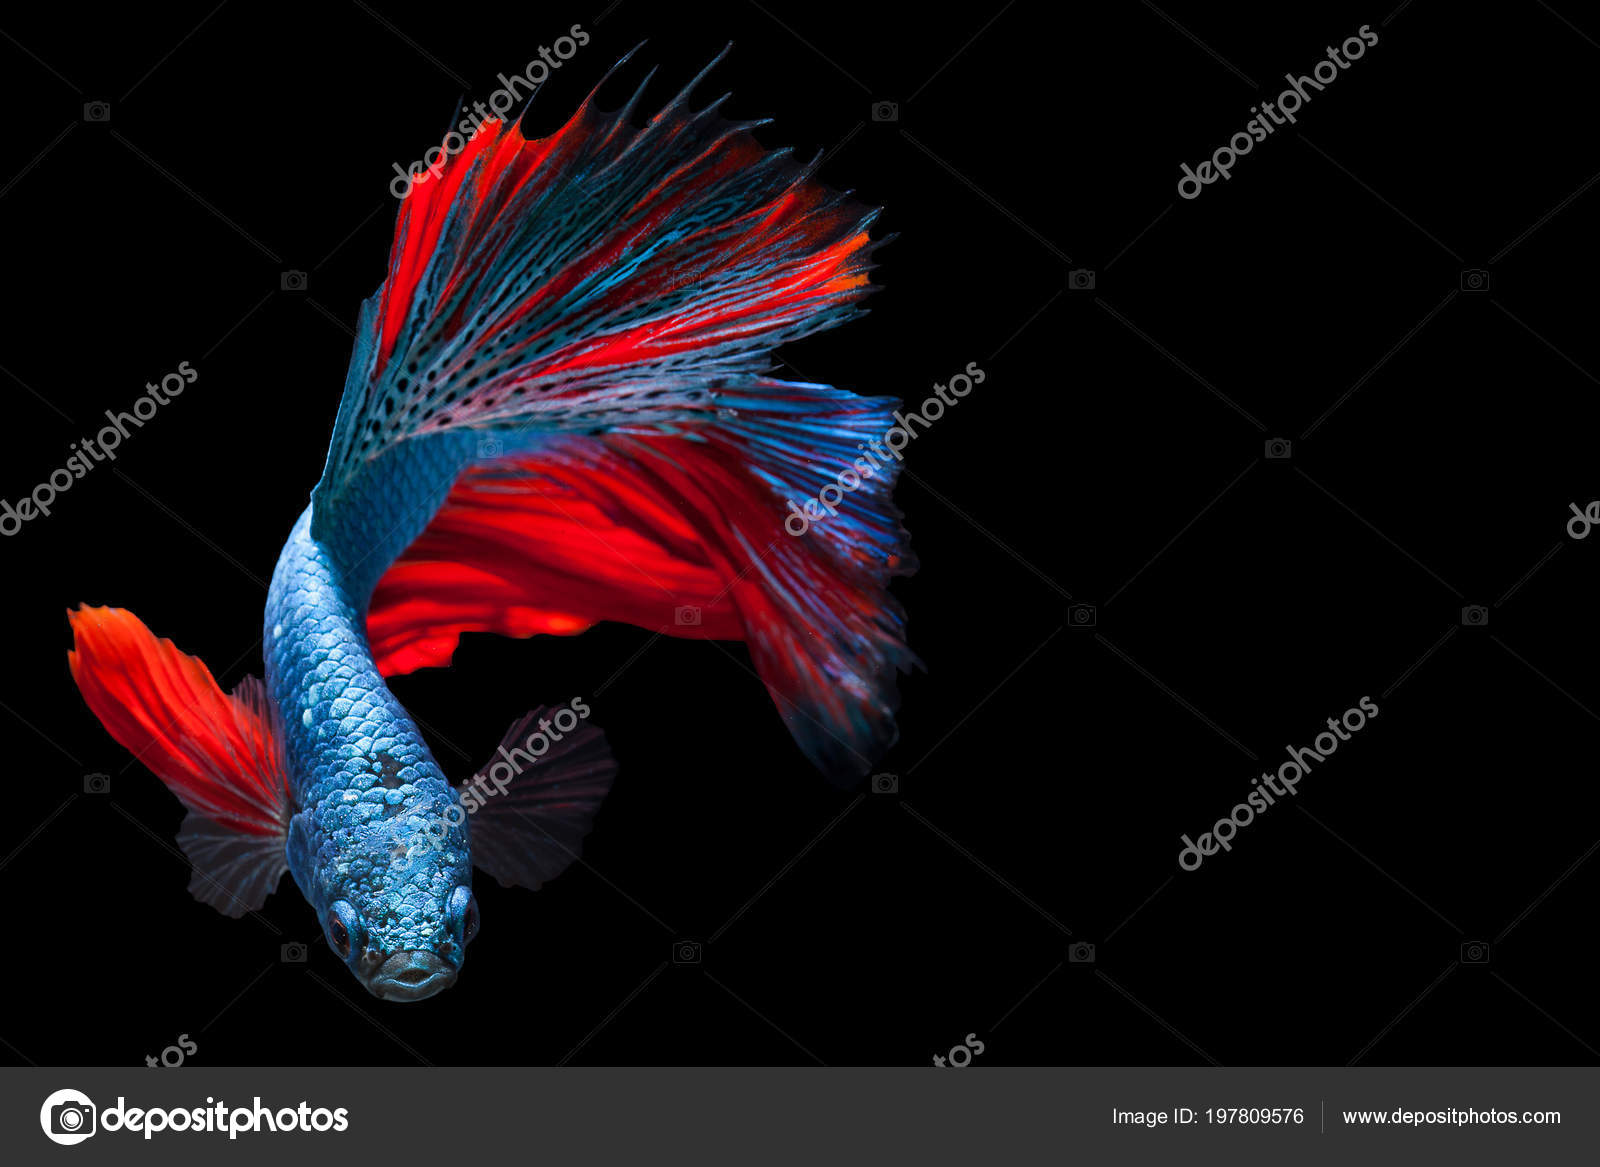 Videos Of Betta Fish Fighting - Images Lobster and Fish